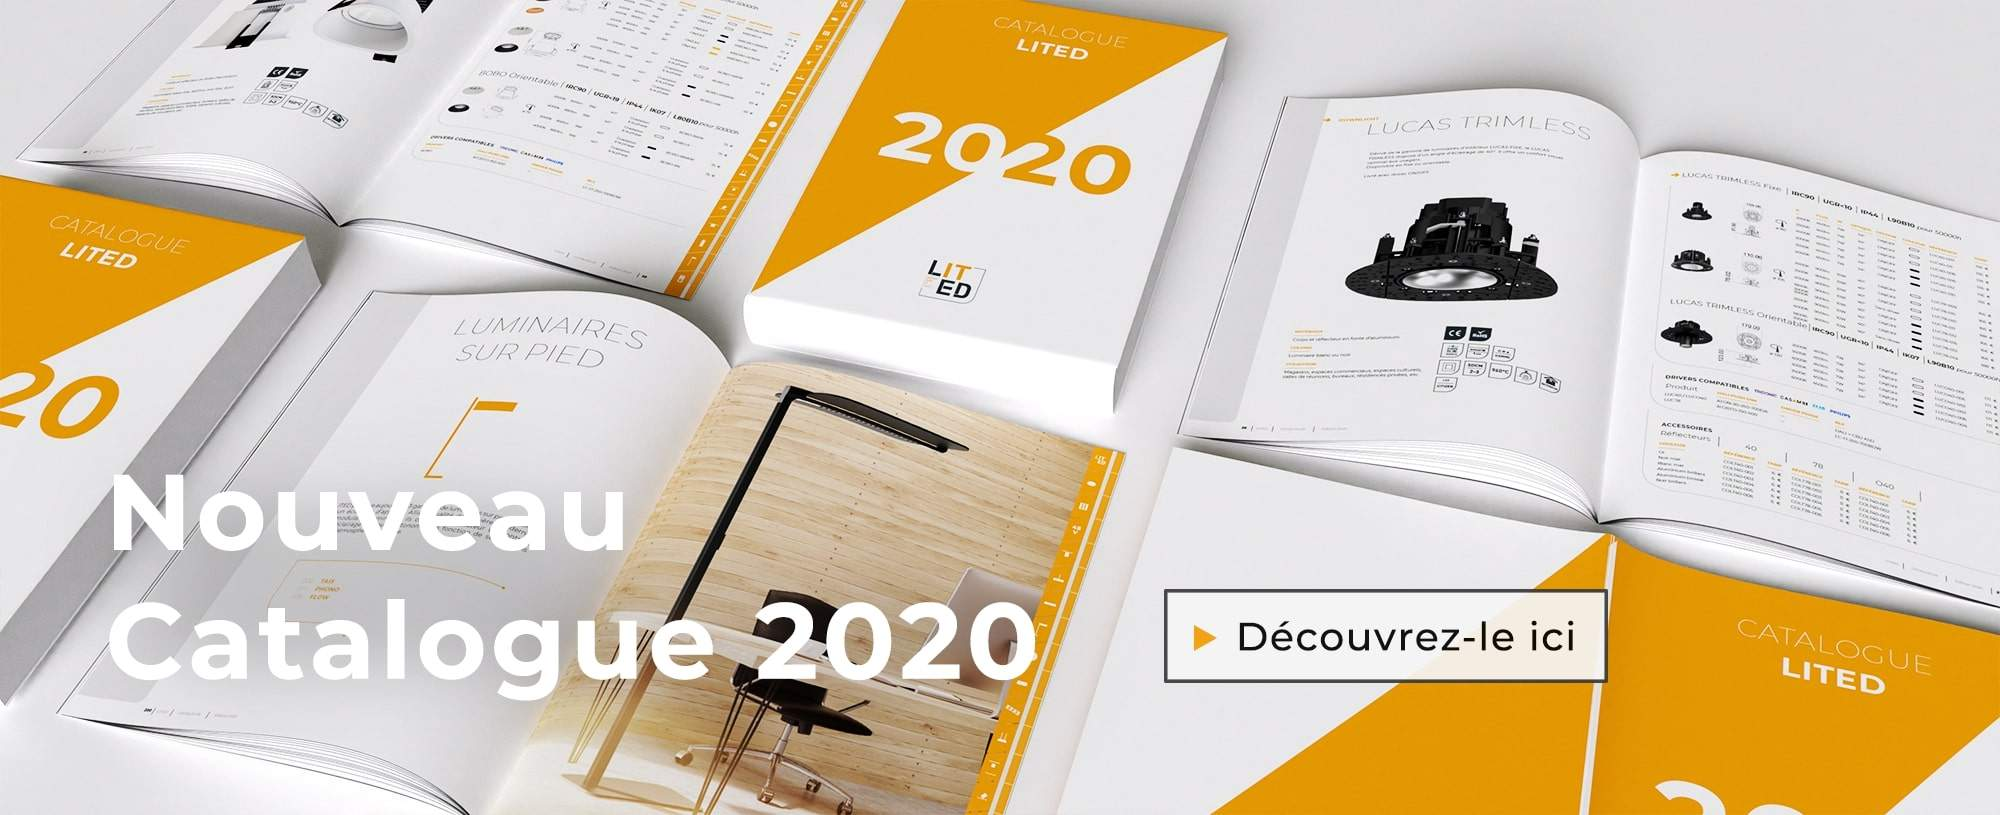 Catalogue 2020 téléchargement LITED